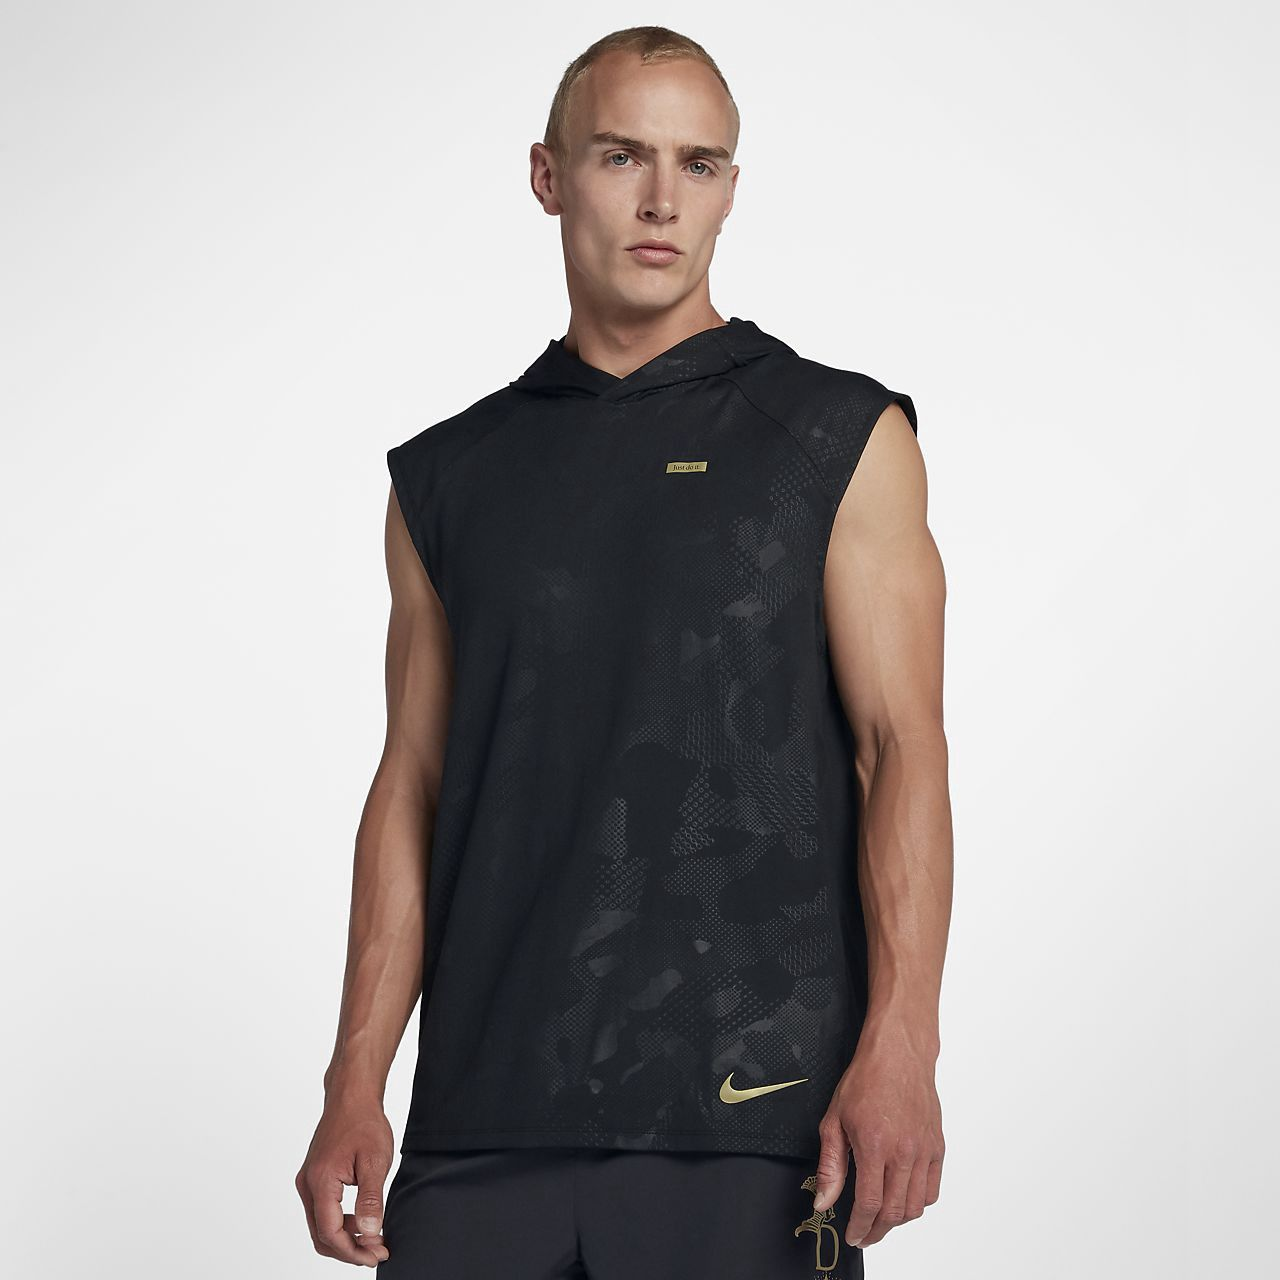 304ac903 Nike Element Men's Sleeveless Running Hoodie - S | Products ...